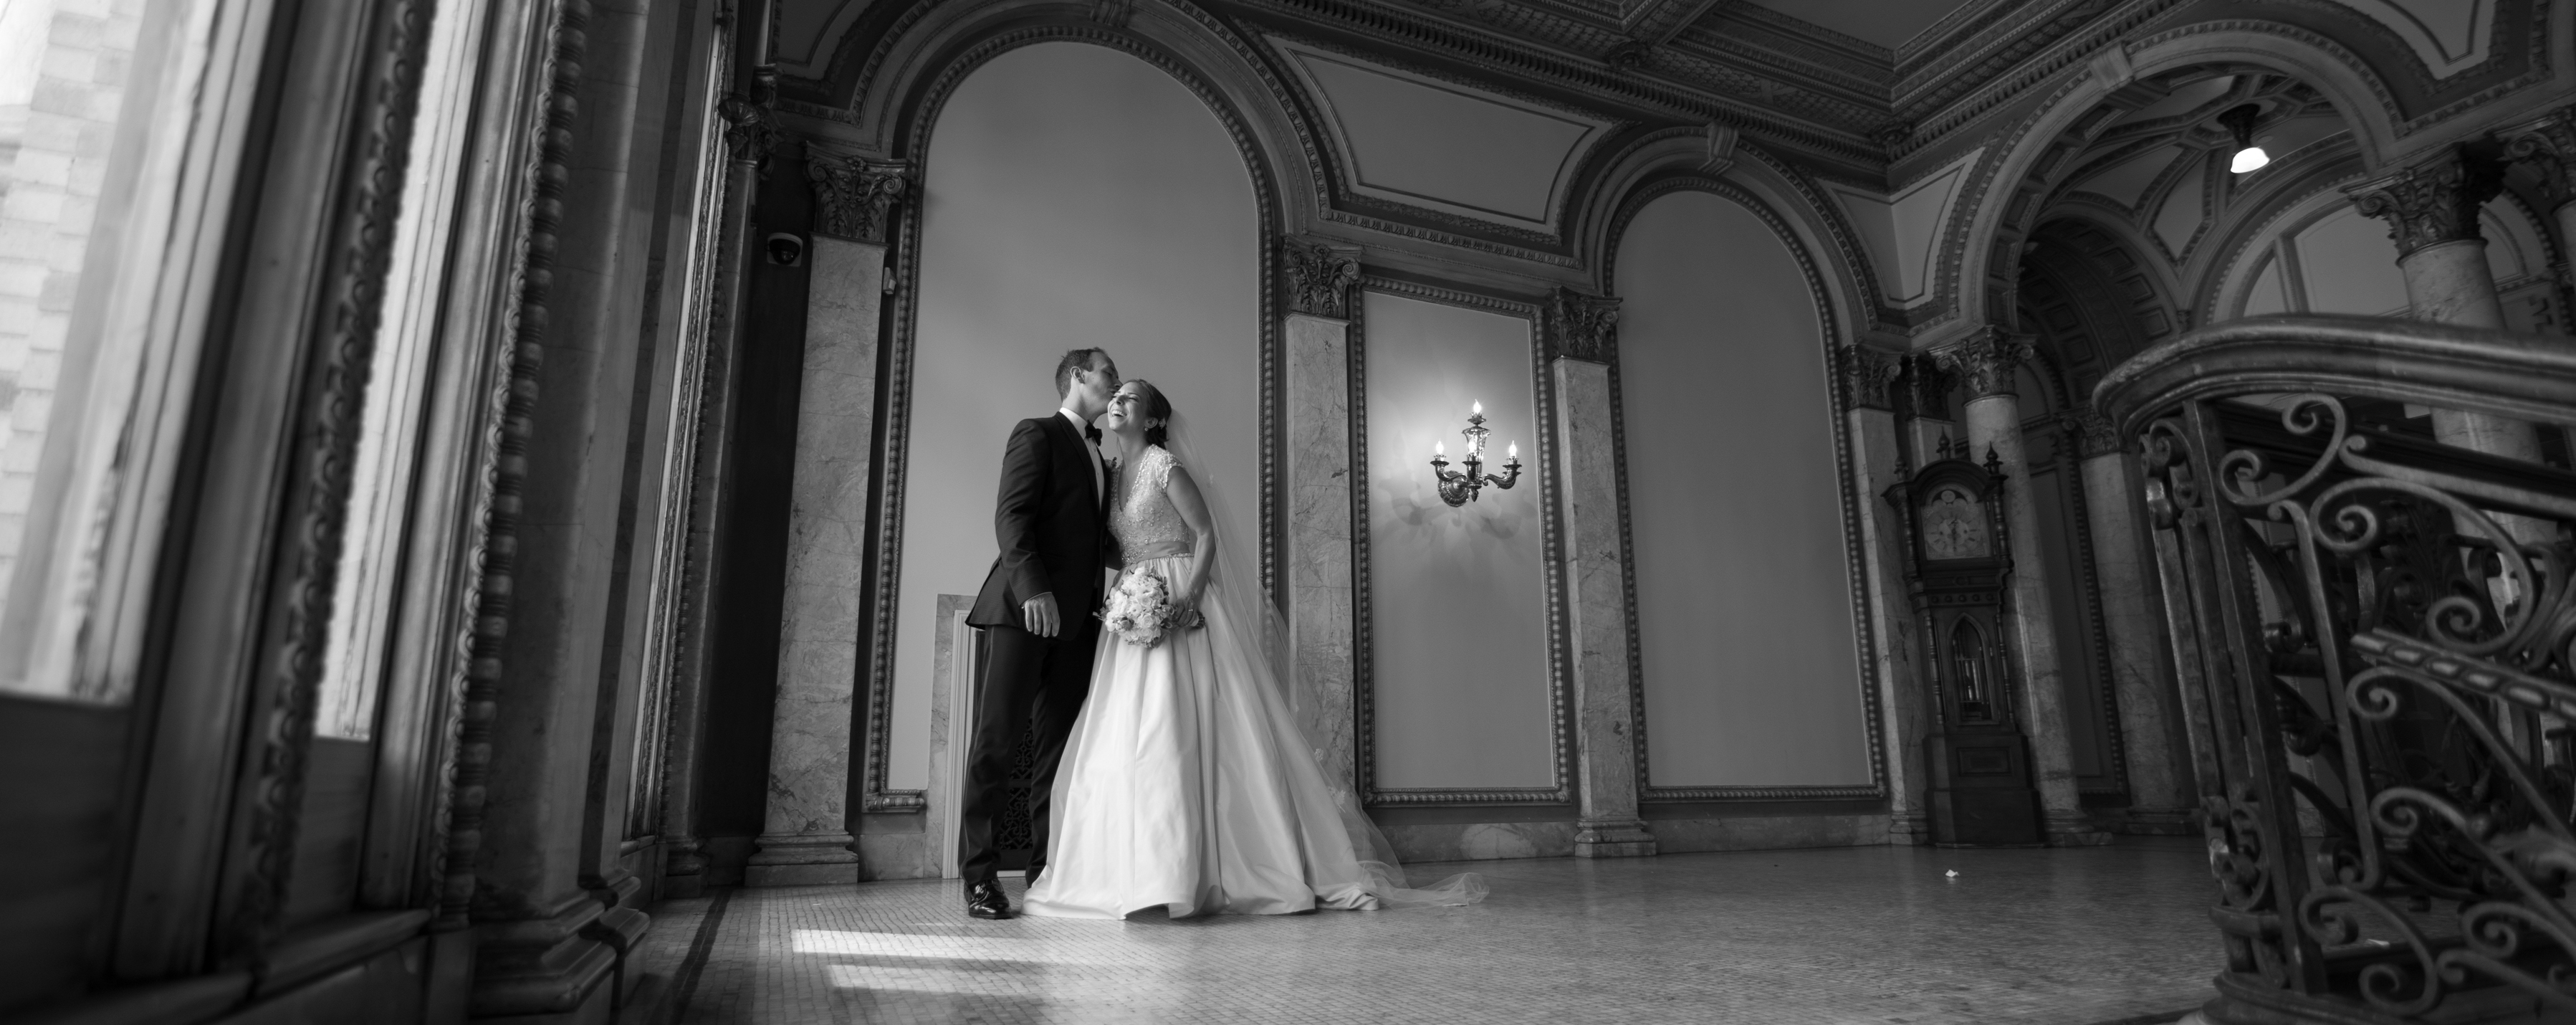 Jessica and Danny's Elegant Providence Public Library Wedding